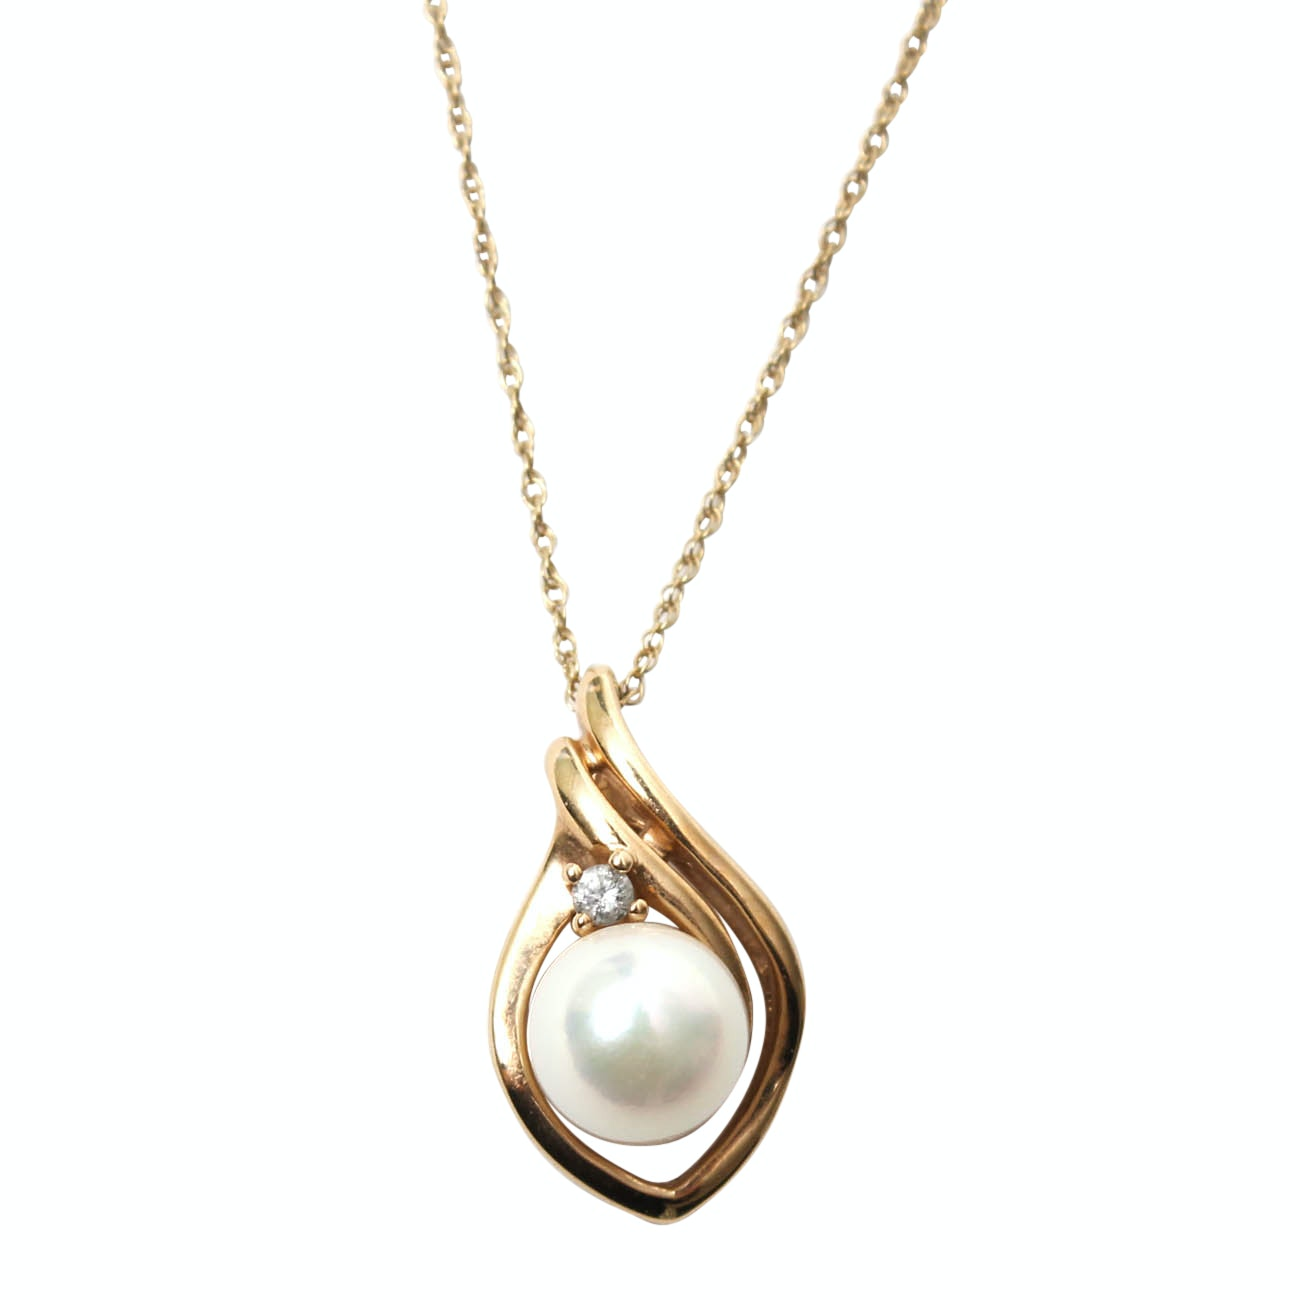 10K Yellow Gold Diamond and Pearl Pendant Necklace